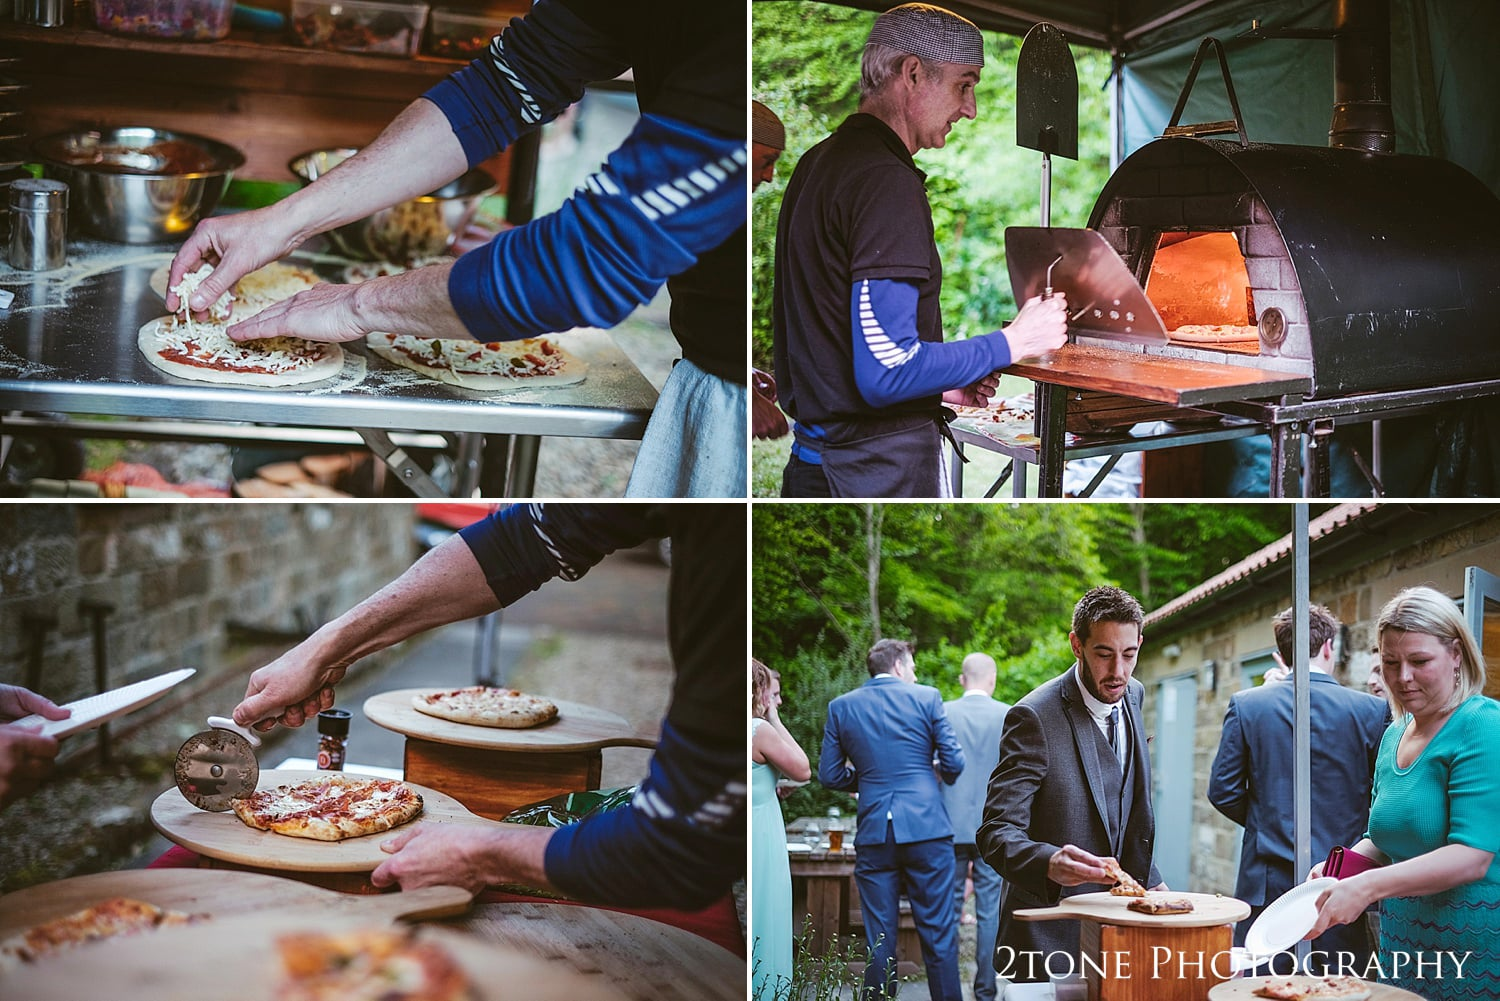 Pizza oven at Ingleby Greenhow Village Hall by 2tone Photography www.2tonephotograhy.co.uk